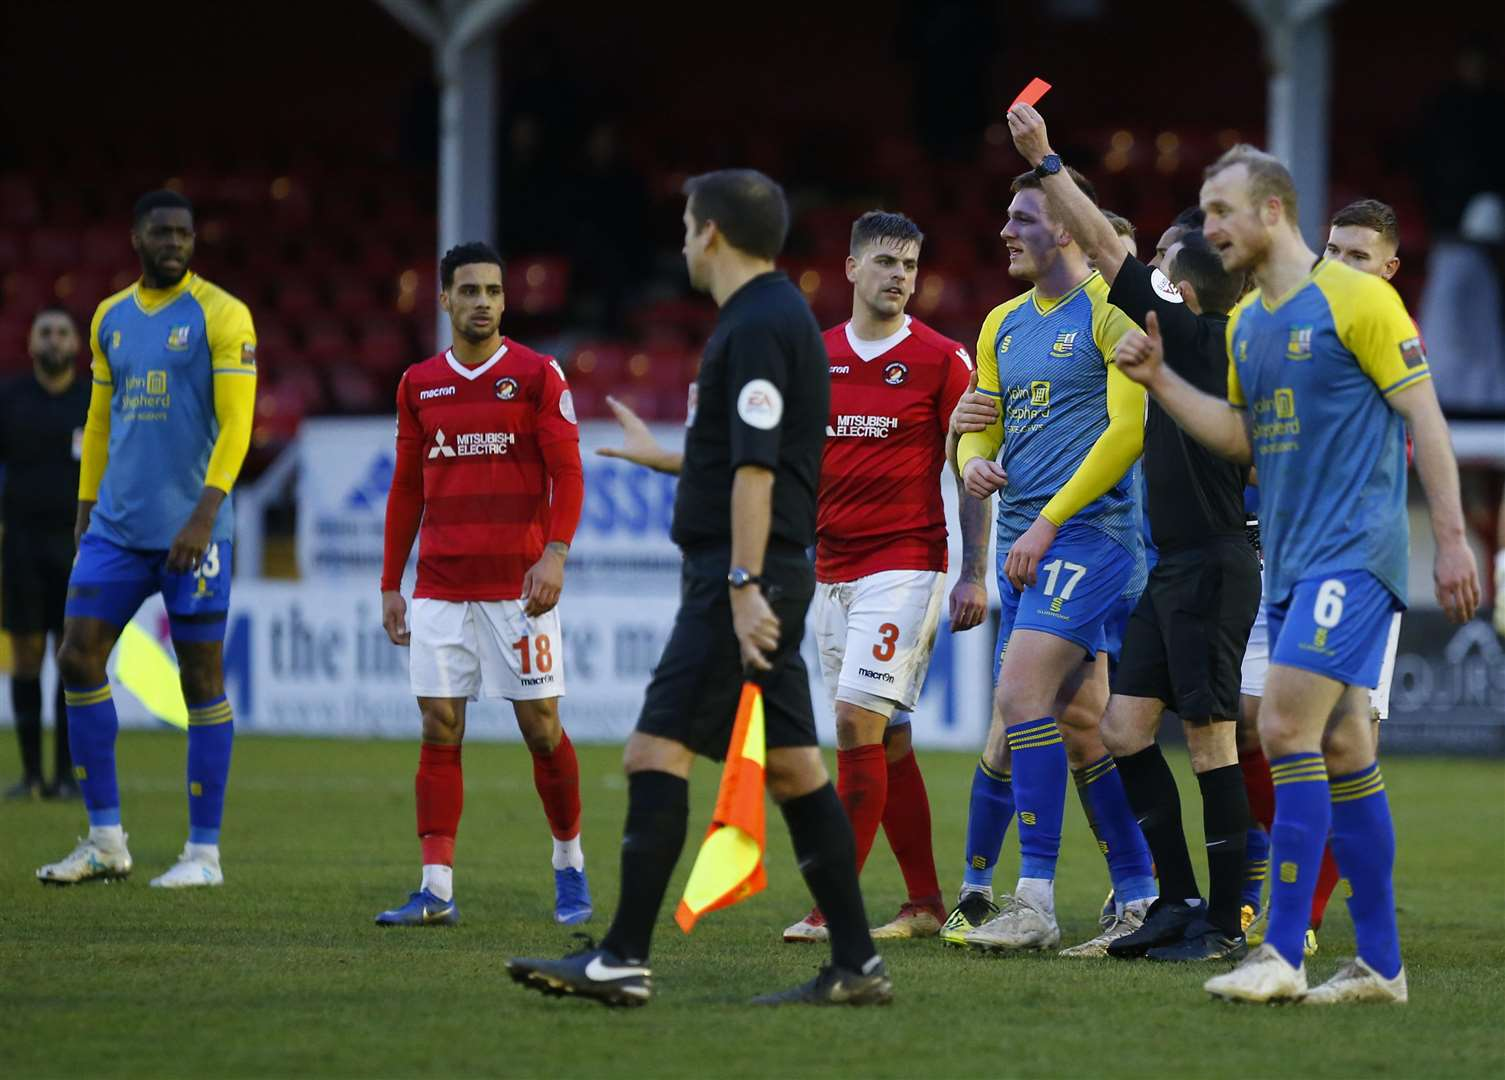 Referee Peter Gibbons showed four red cards in stoppage-time Picture: Andy Jones